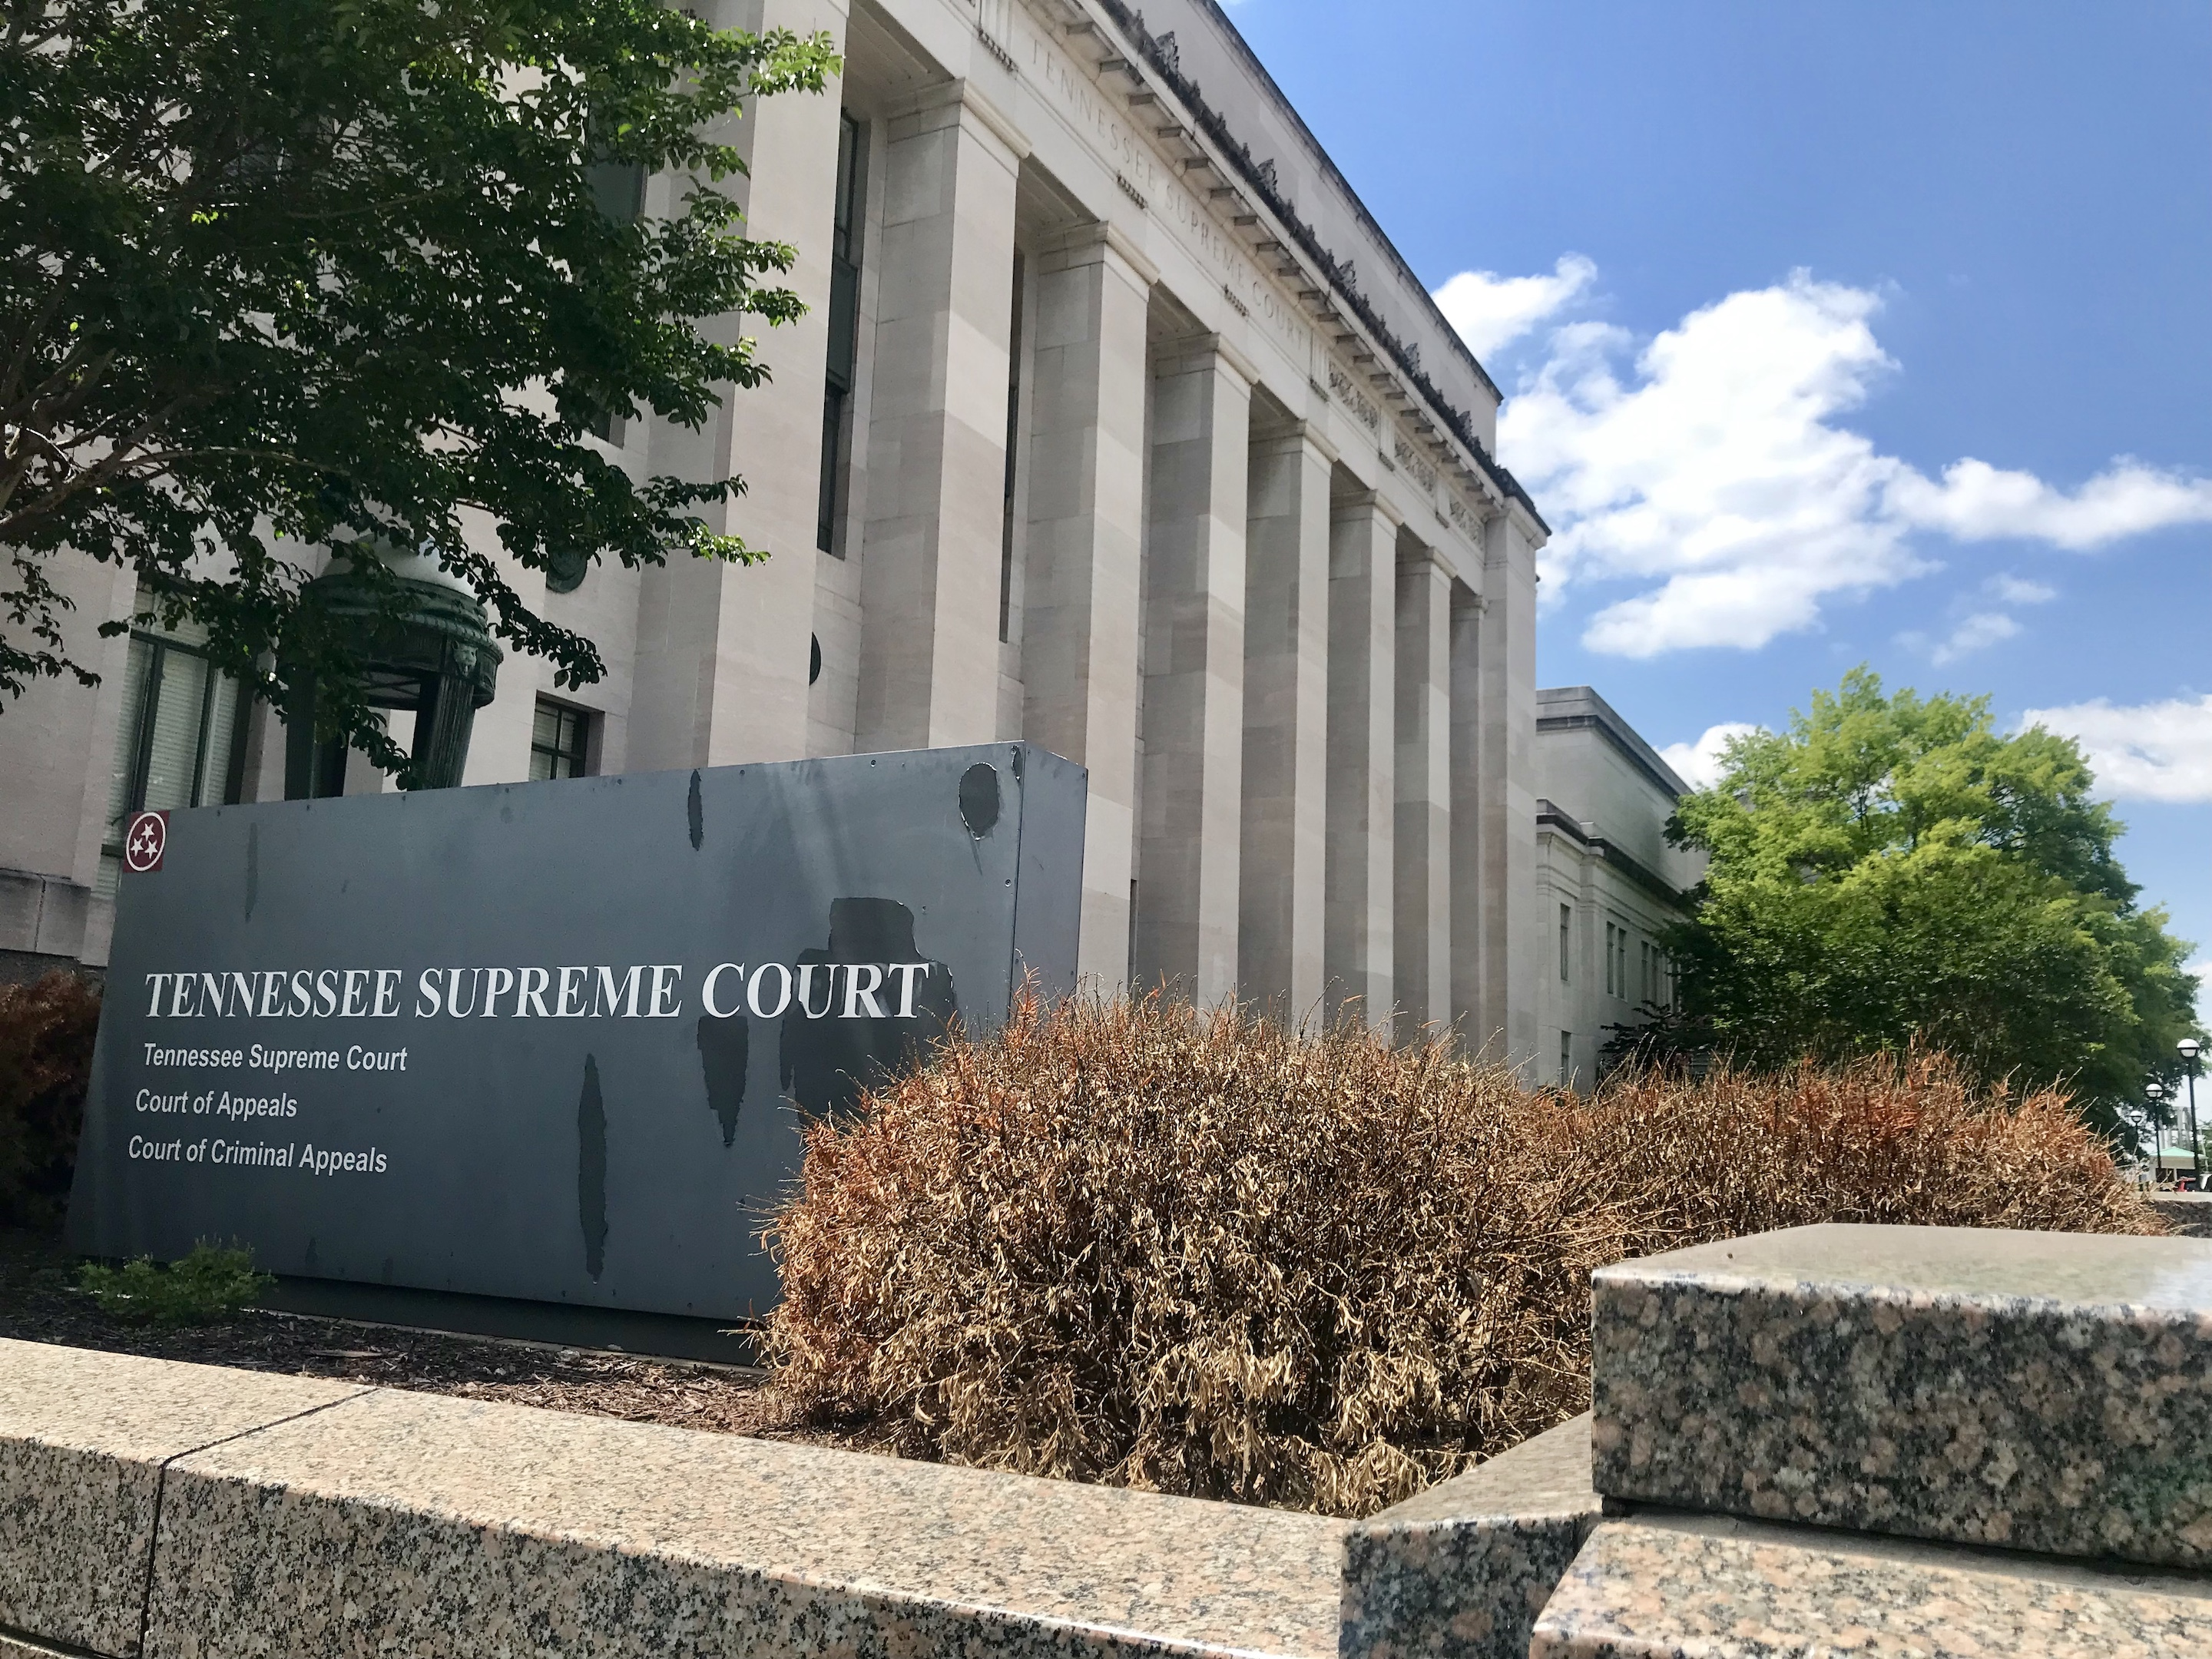 A large, multi-columned stone building set against a bright blue sky. A sign in front of the building identifies it as the Tennessee Supreme Court.